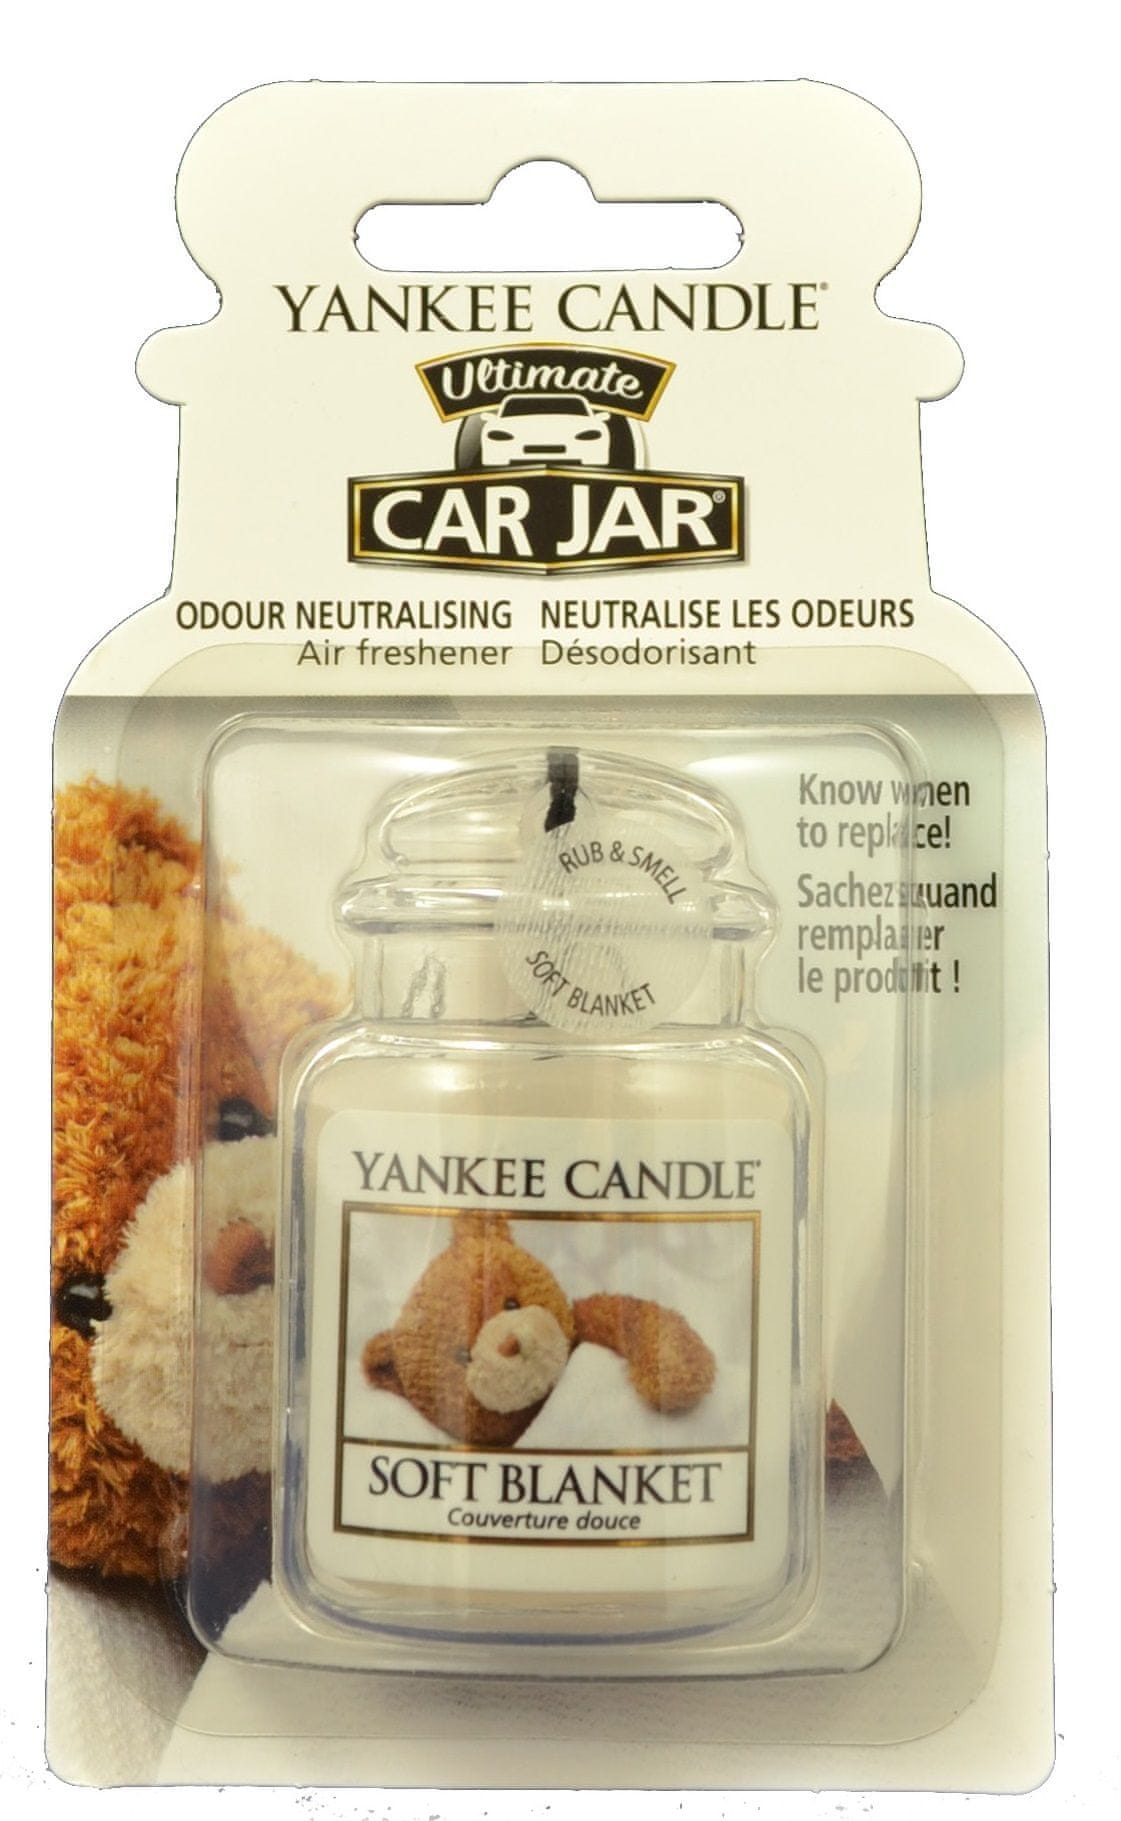 Yankee Candle Car Jar luxusní visačka Soft Blanket 1 ks